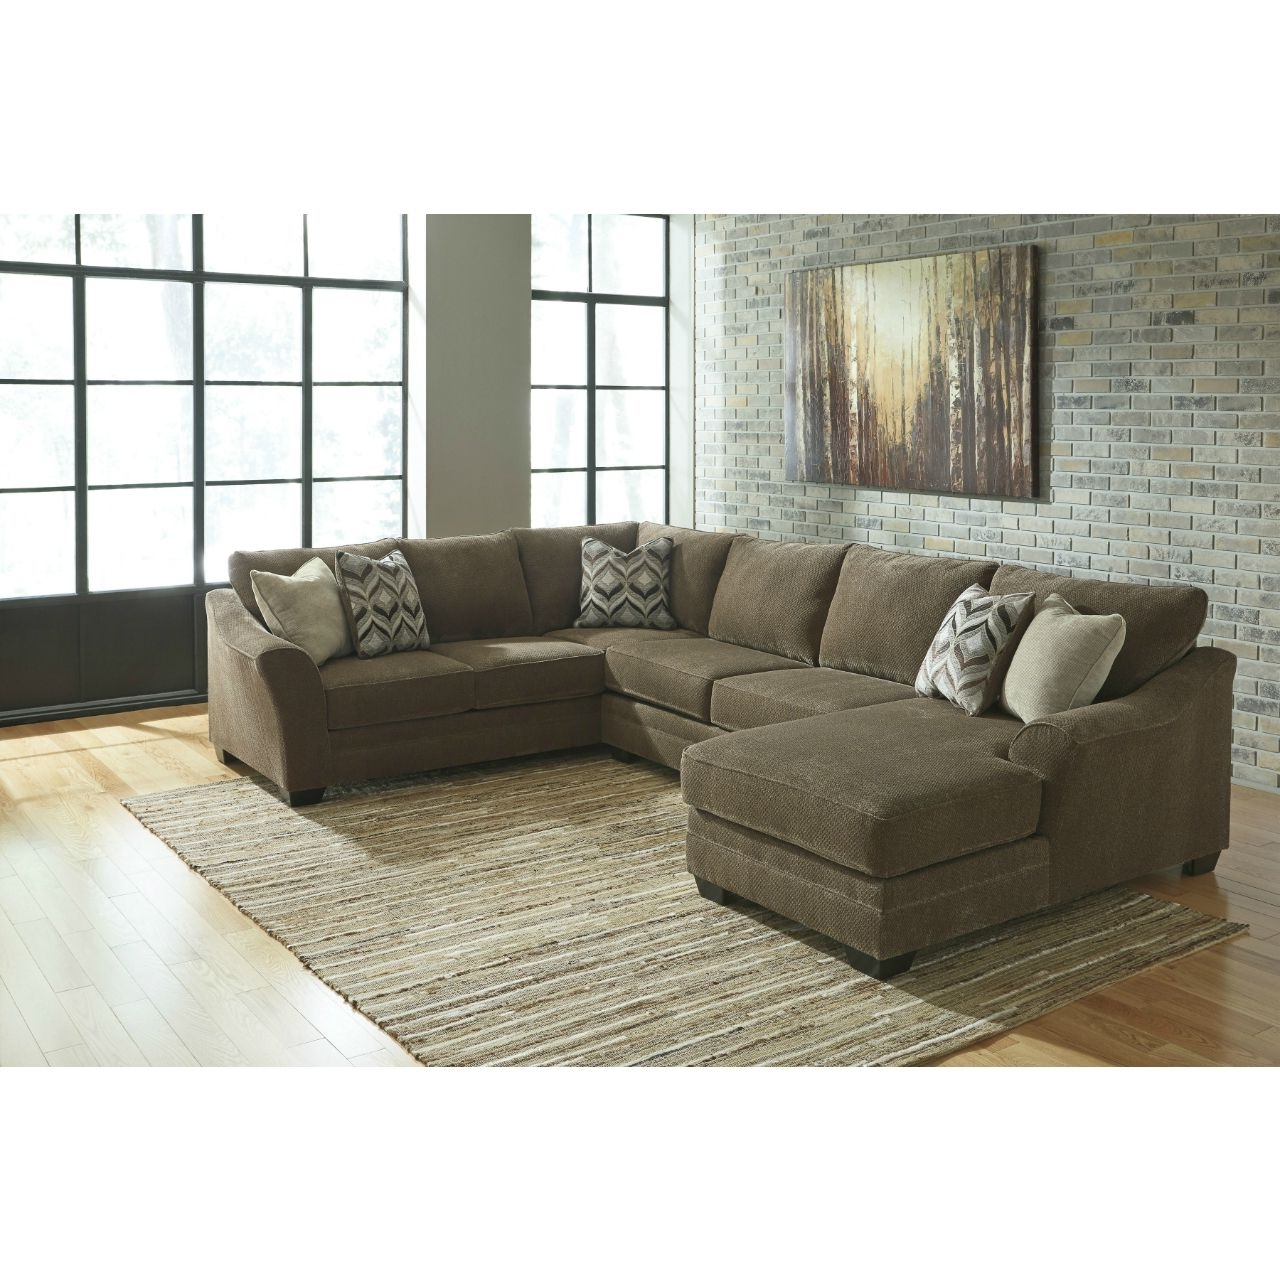 Douglas 3 Piece Sectional (View 6 of 15)